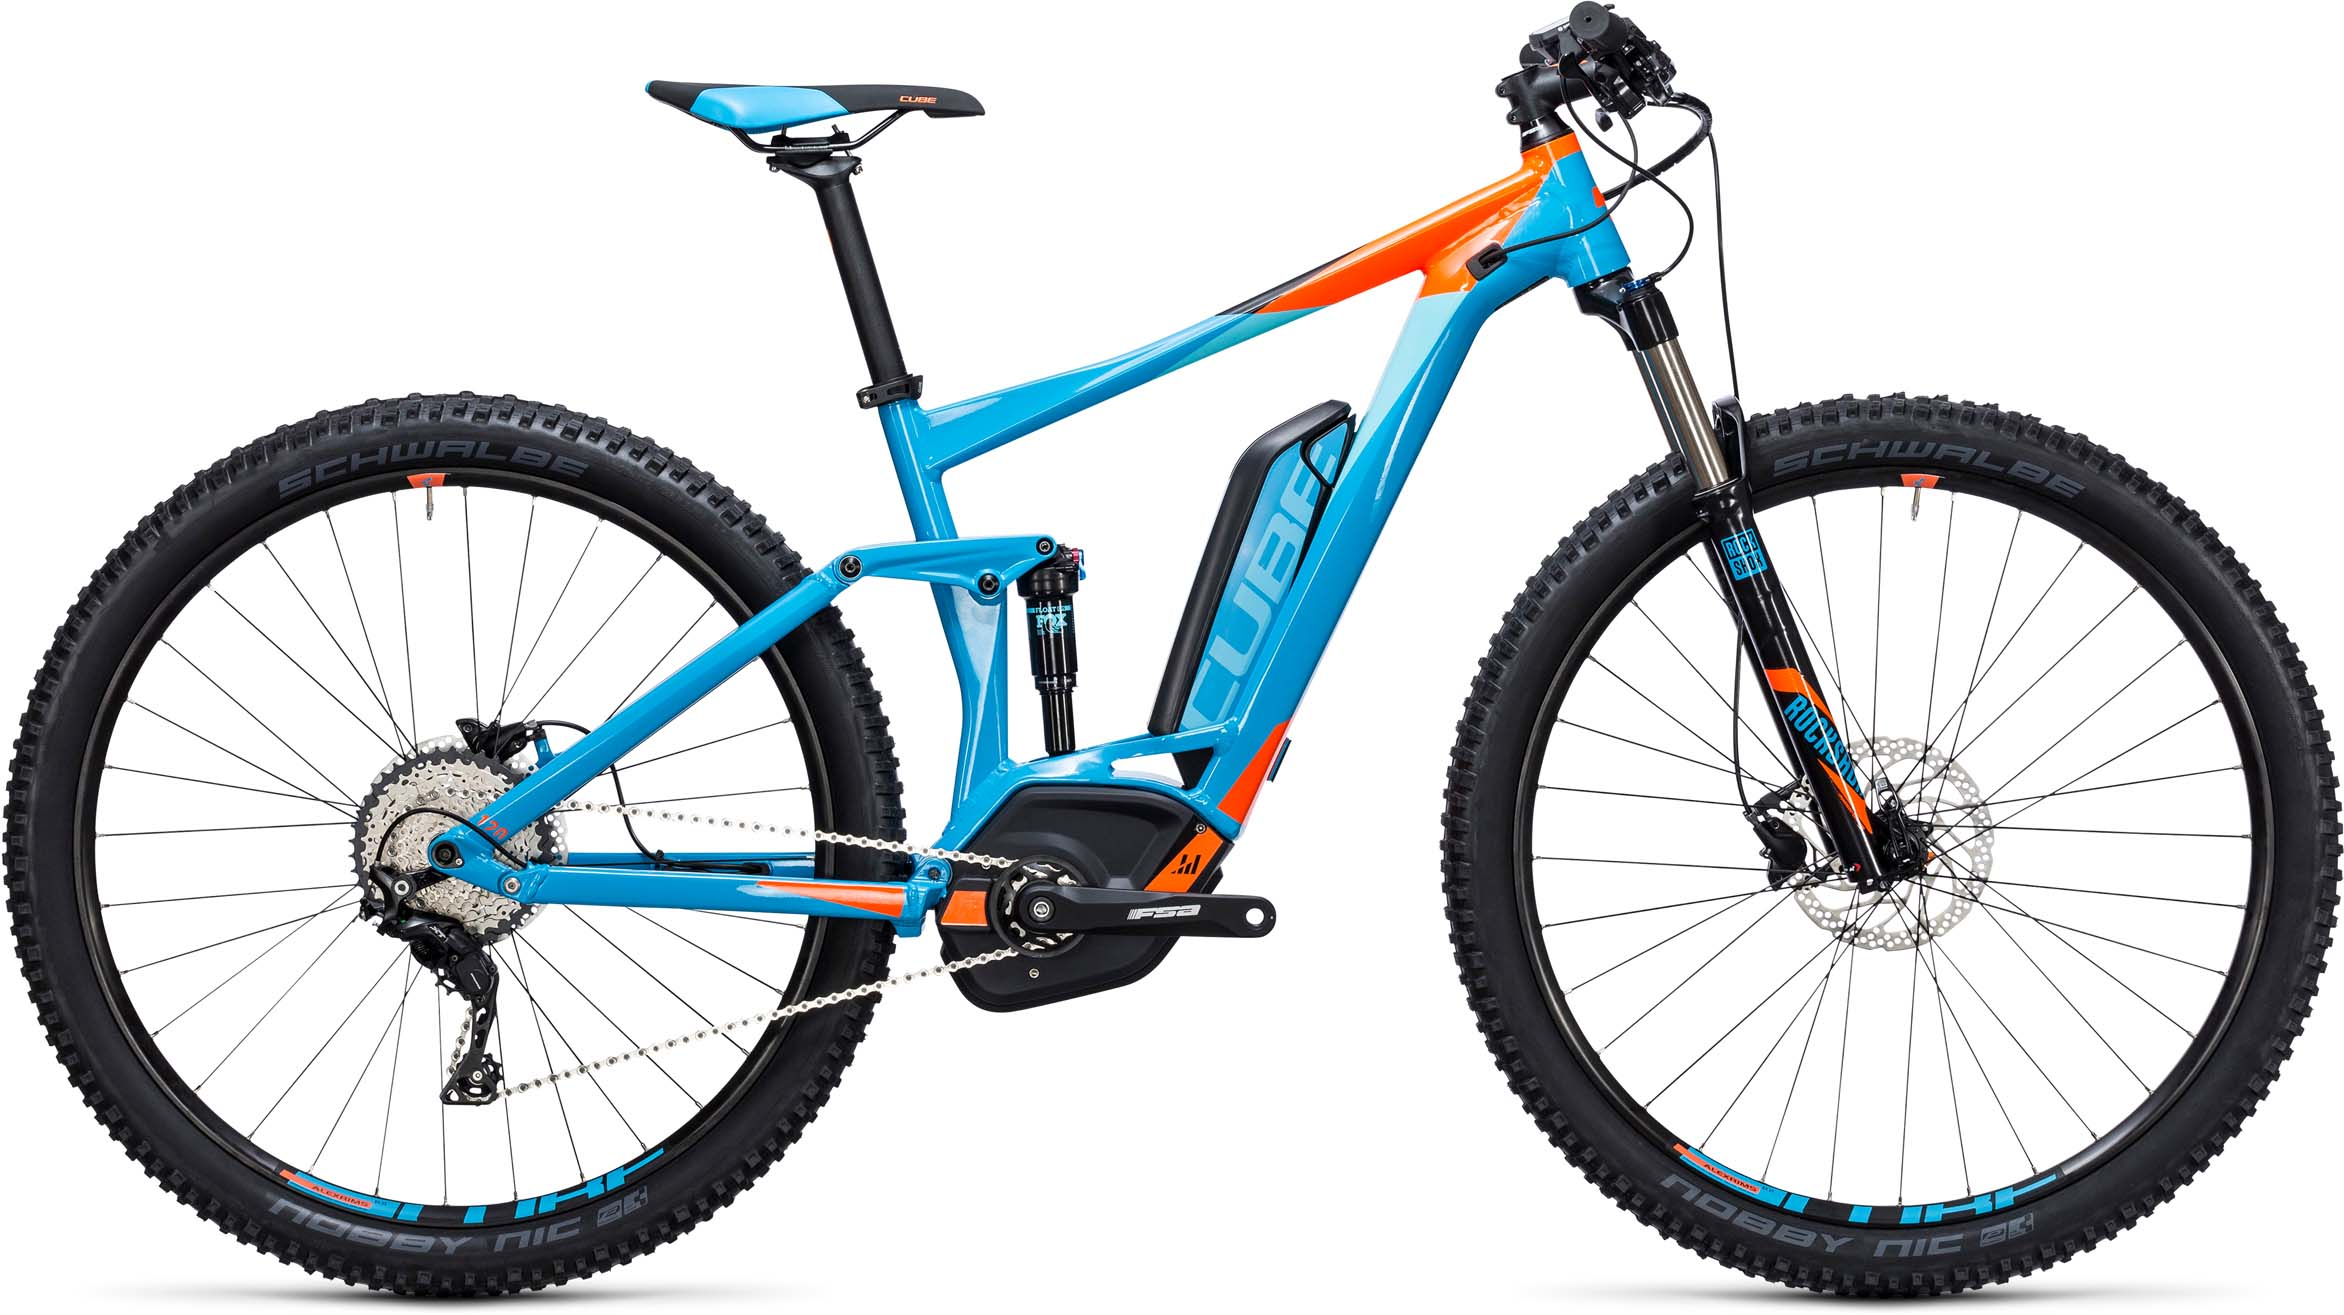 e bike mtb fully 29 zoll mountainbikes fully e bikes mhw r der f r alle der. Black Bedroom Furniture Sets. Home Design Ideas